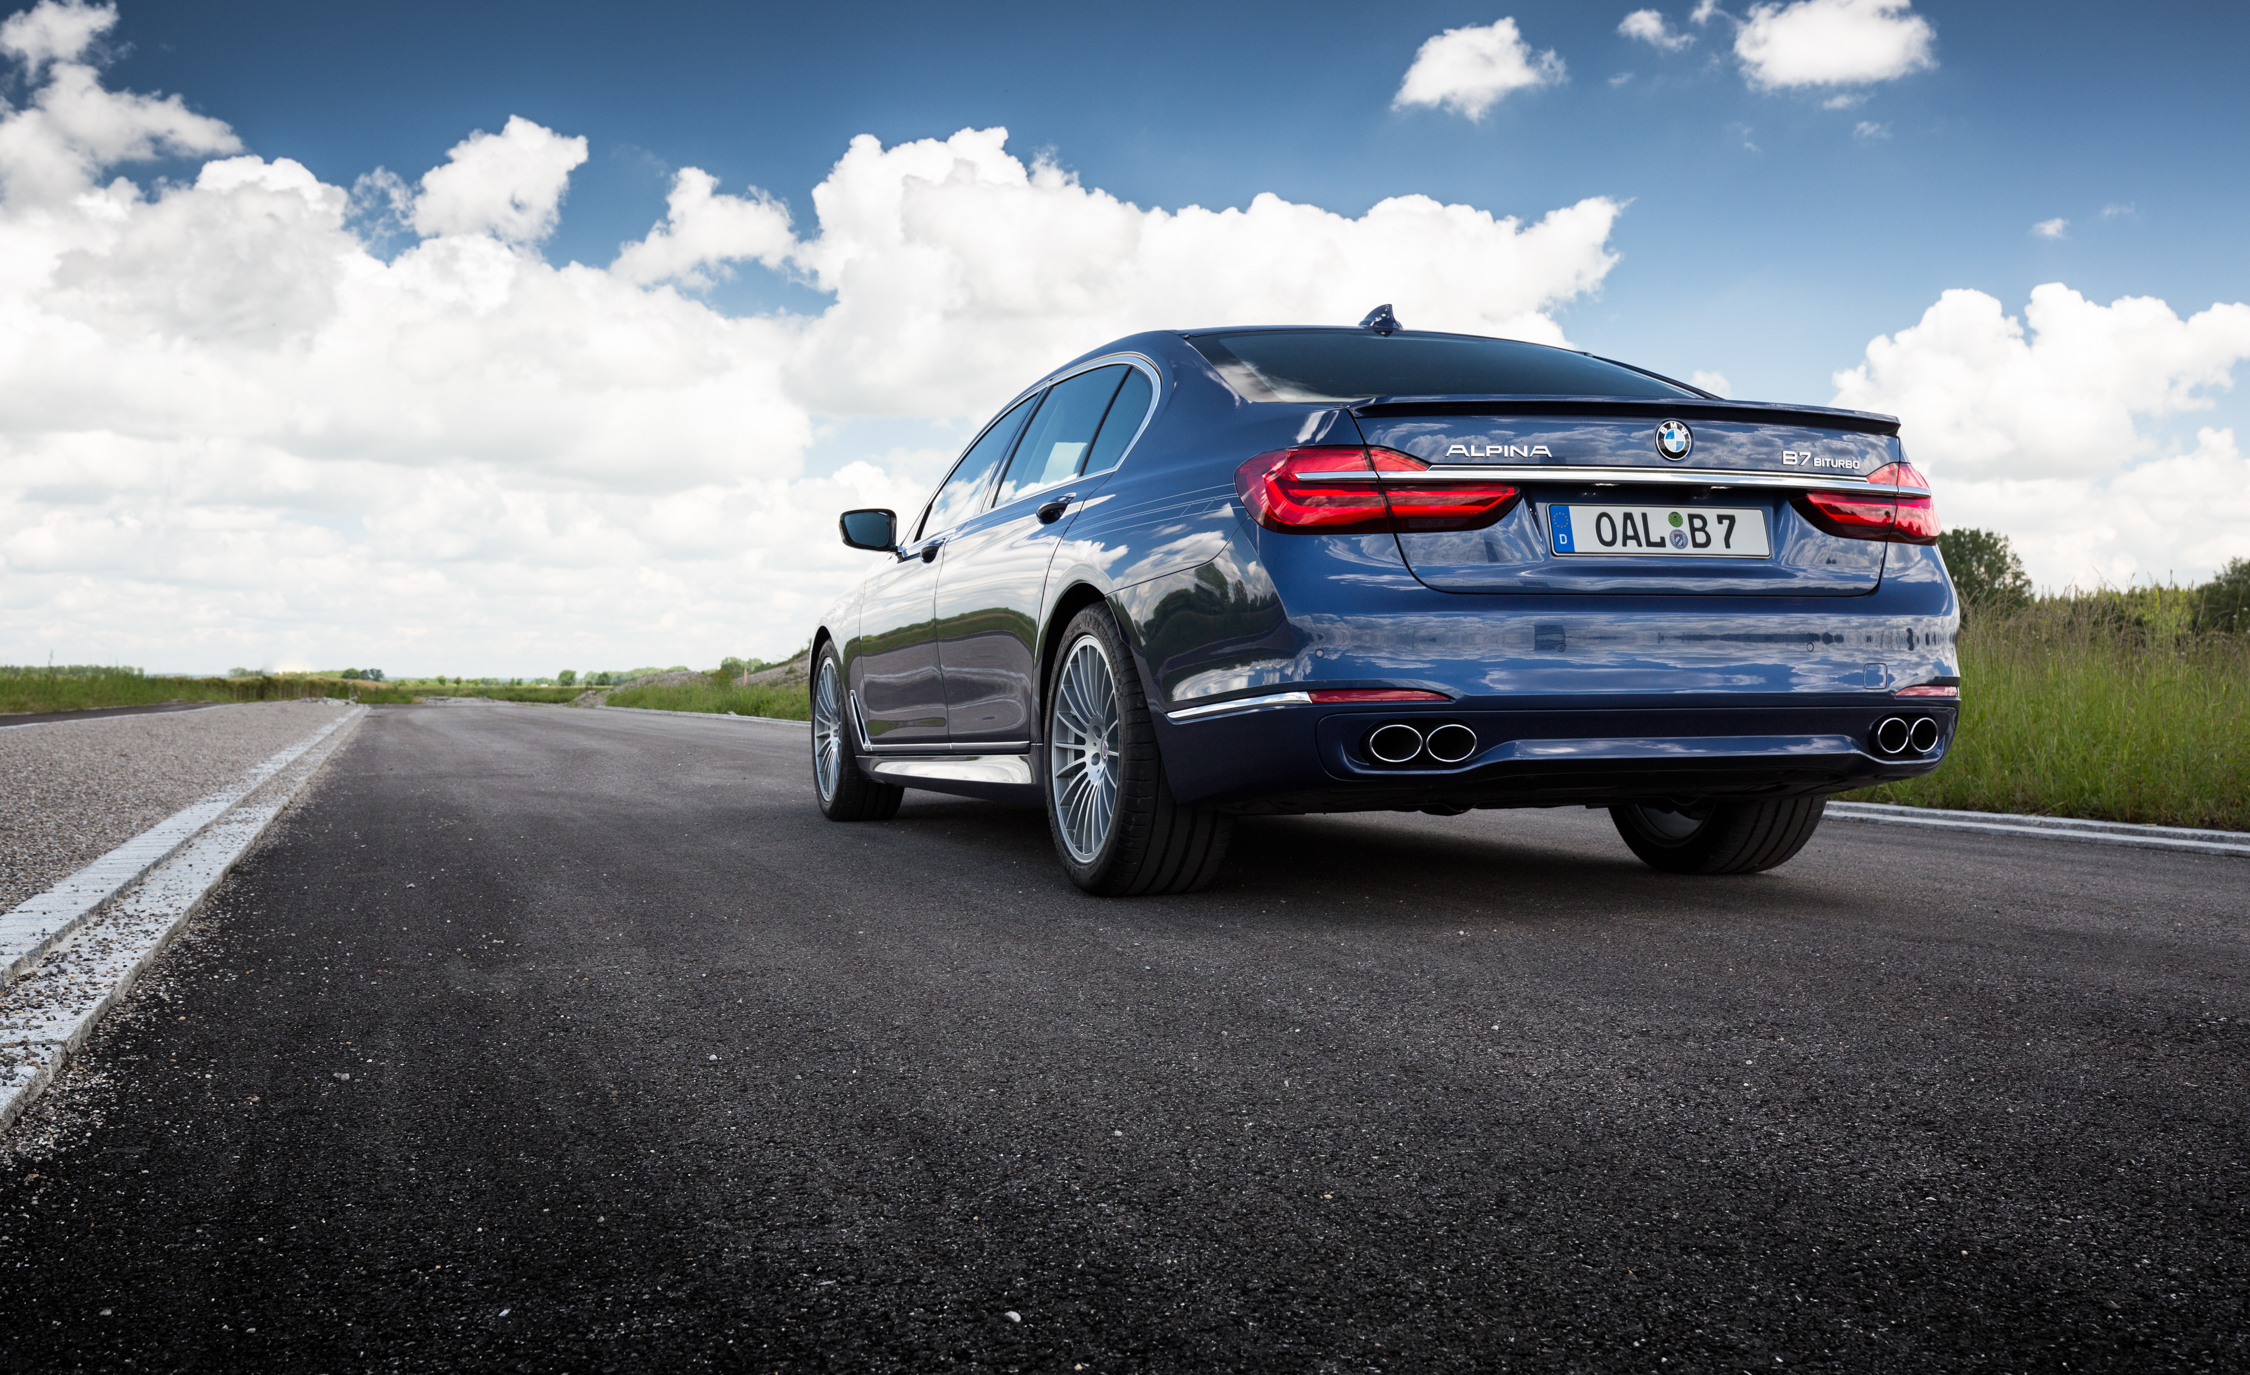 2017 BMW Alpina B7 Exterior Rear View (View 40 of 45)